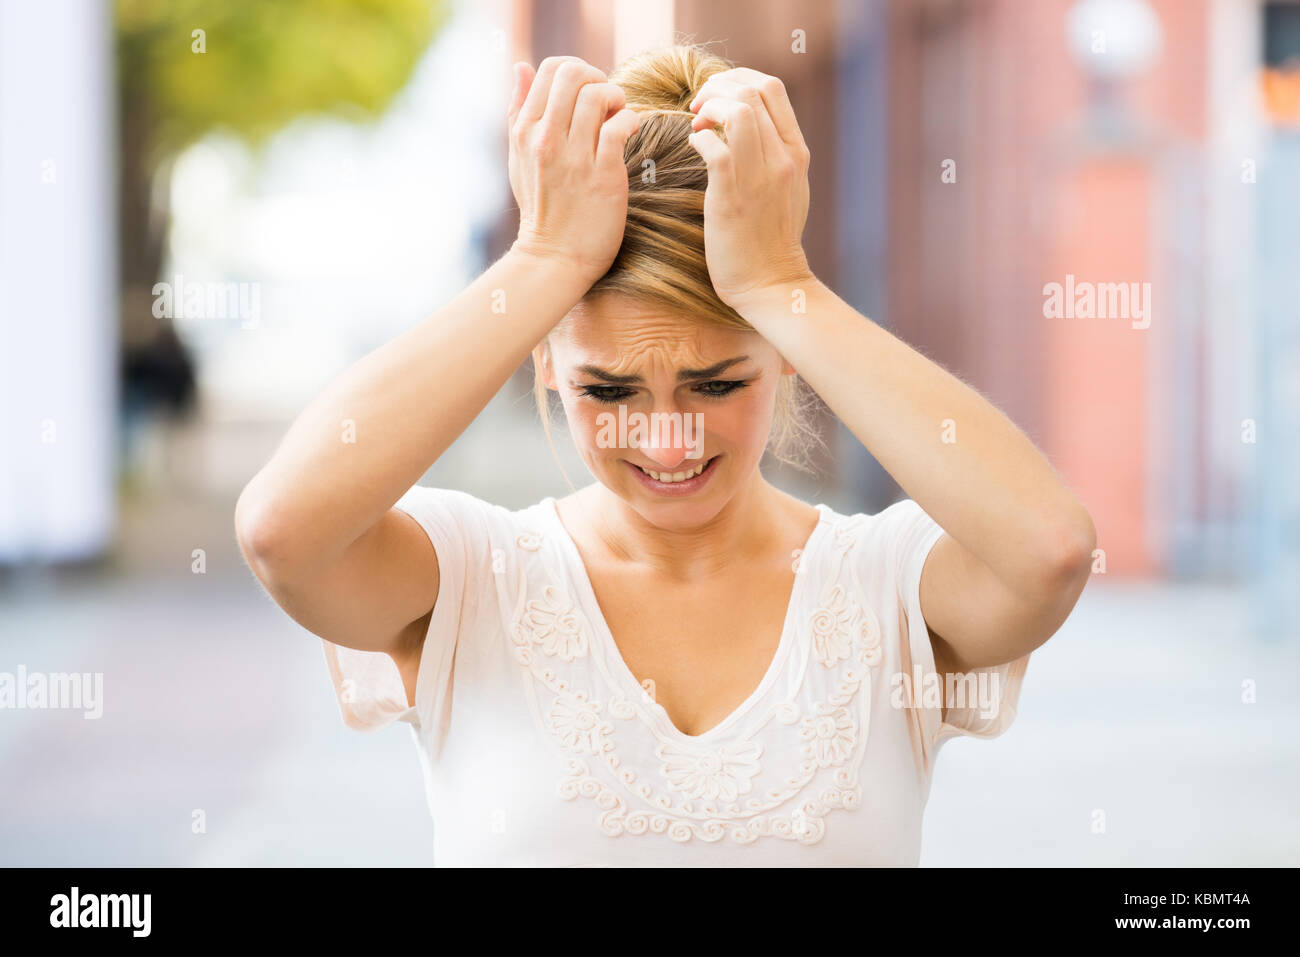 Sad young woman suffering from headache outdoors - Stock Image